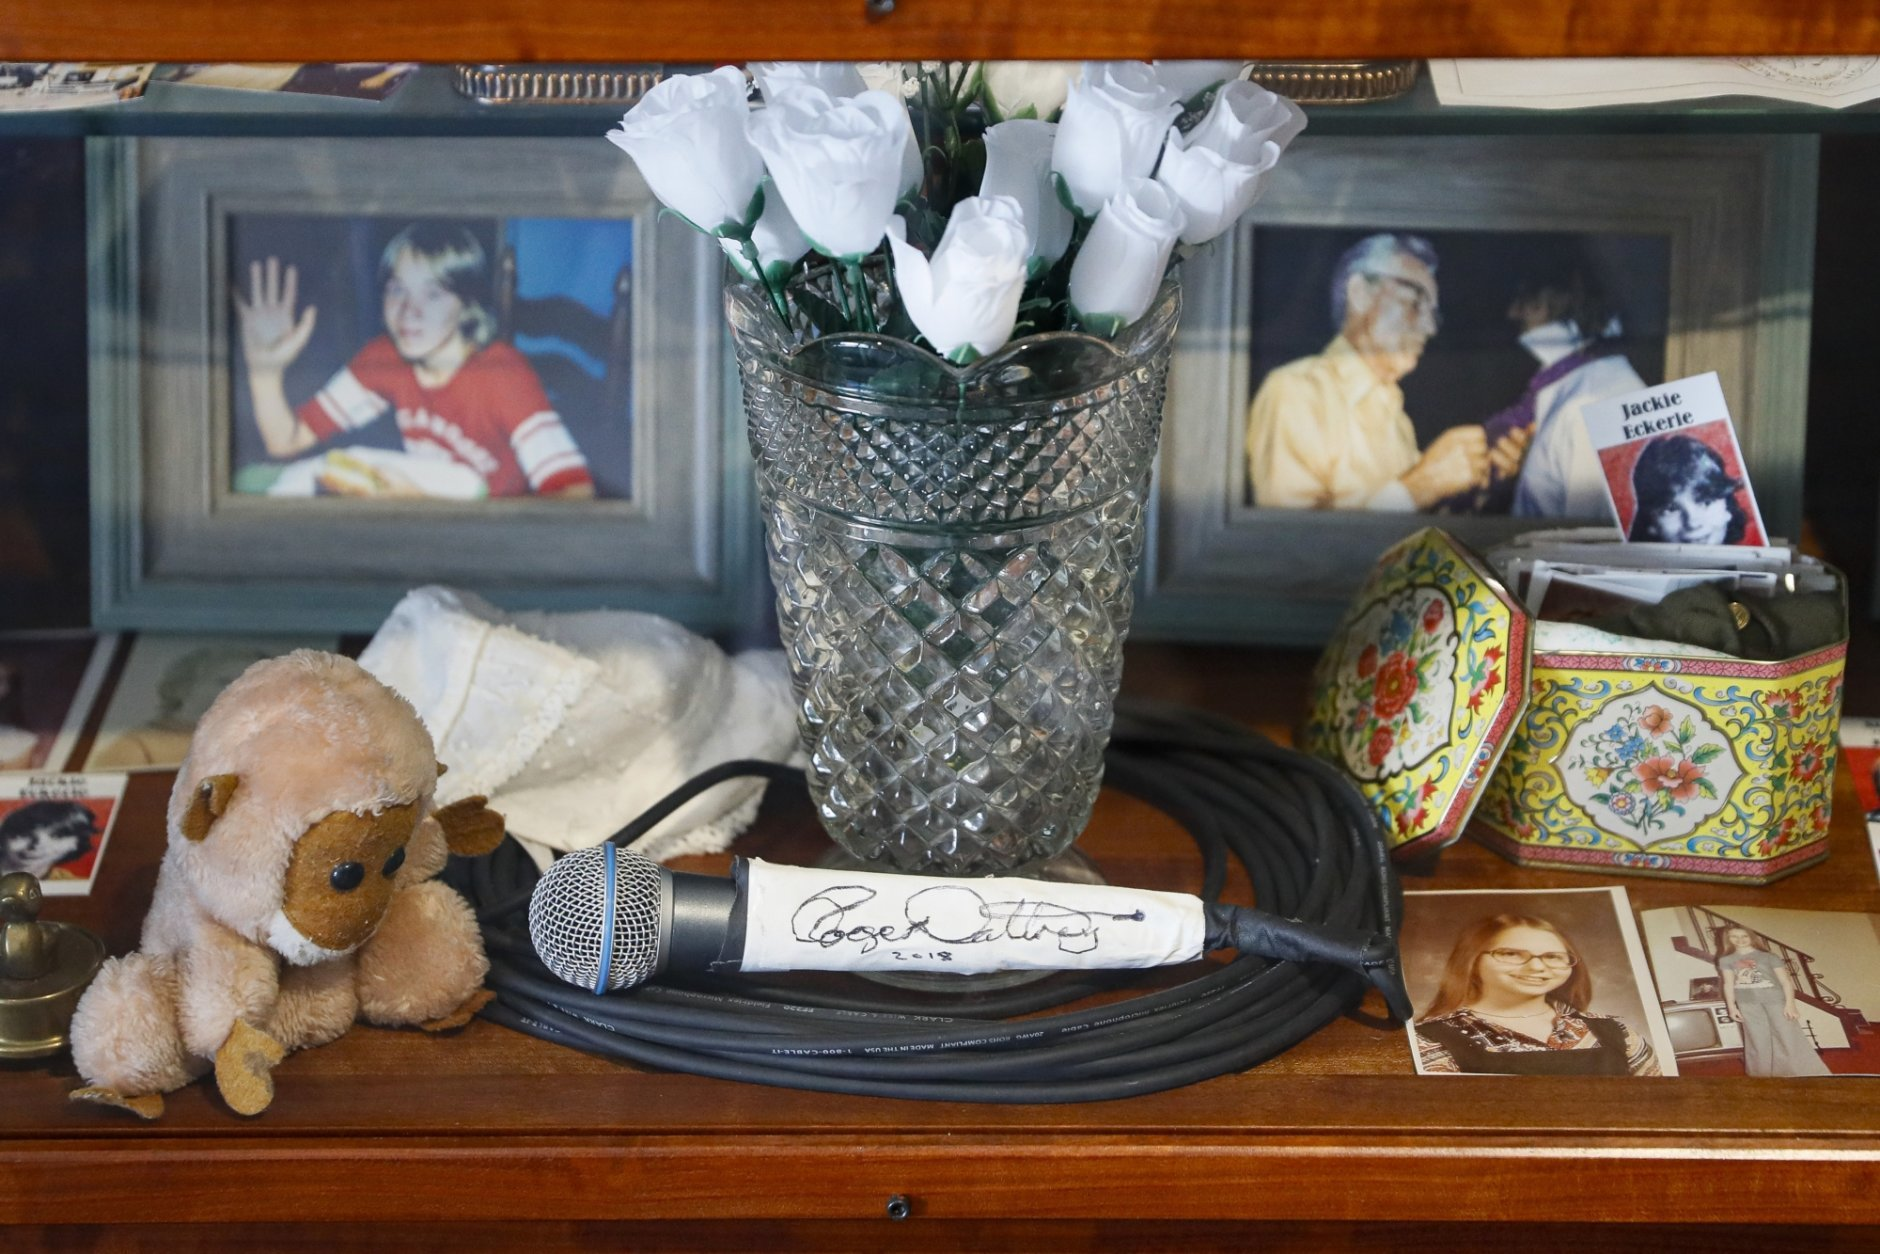 In this Thursday, Nov. 21, 2019 photo, a signed microphone by The Who's Roger Daltrey is displayed in a memorial cabinet at the Finneytown High School secondary campus in Finneytown, Ohio, along with other mementoes of the three Finneytown students killed in a stampede at the band's 1979 Cincinnati concert. Tragedy four decades ago linked the British rock band to the small suburban city in Ohio. In recent years, members of the community and the band have bonded through a project to memorialize the teens. (AP Photo/John Minchillo)